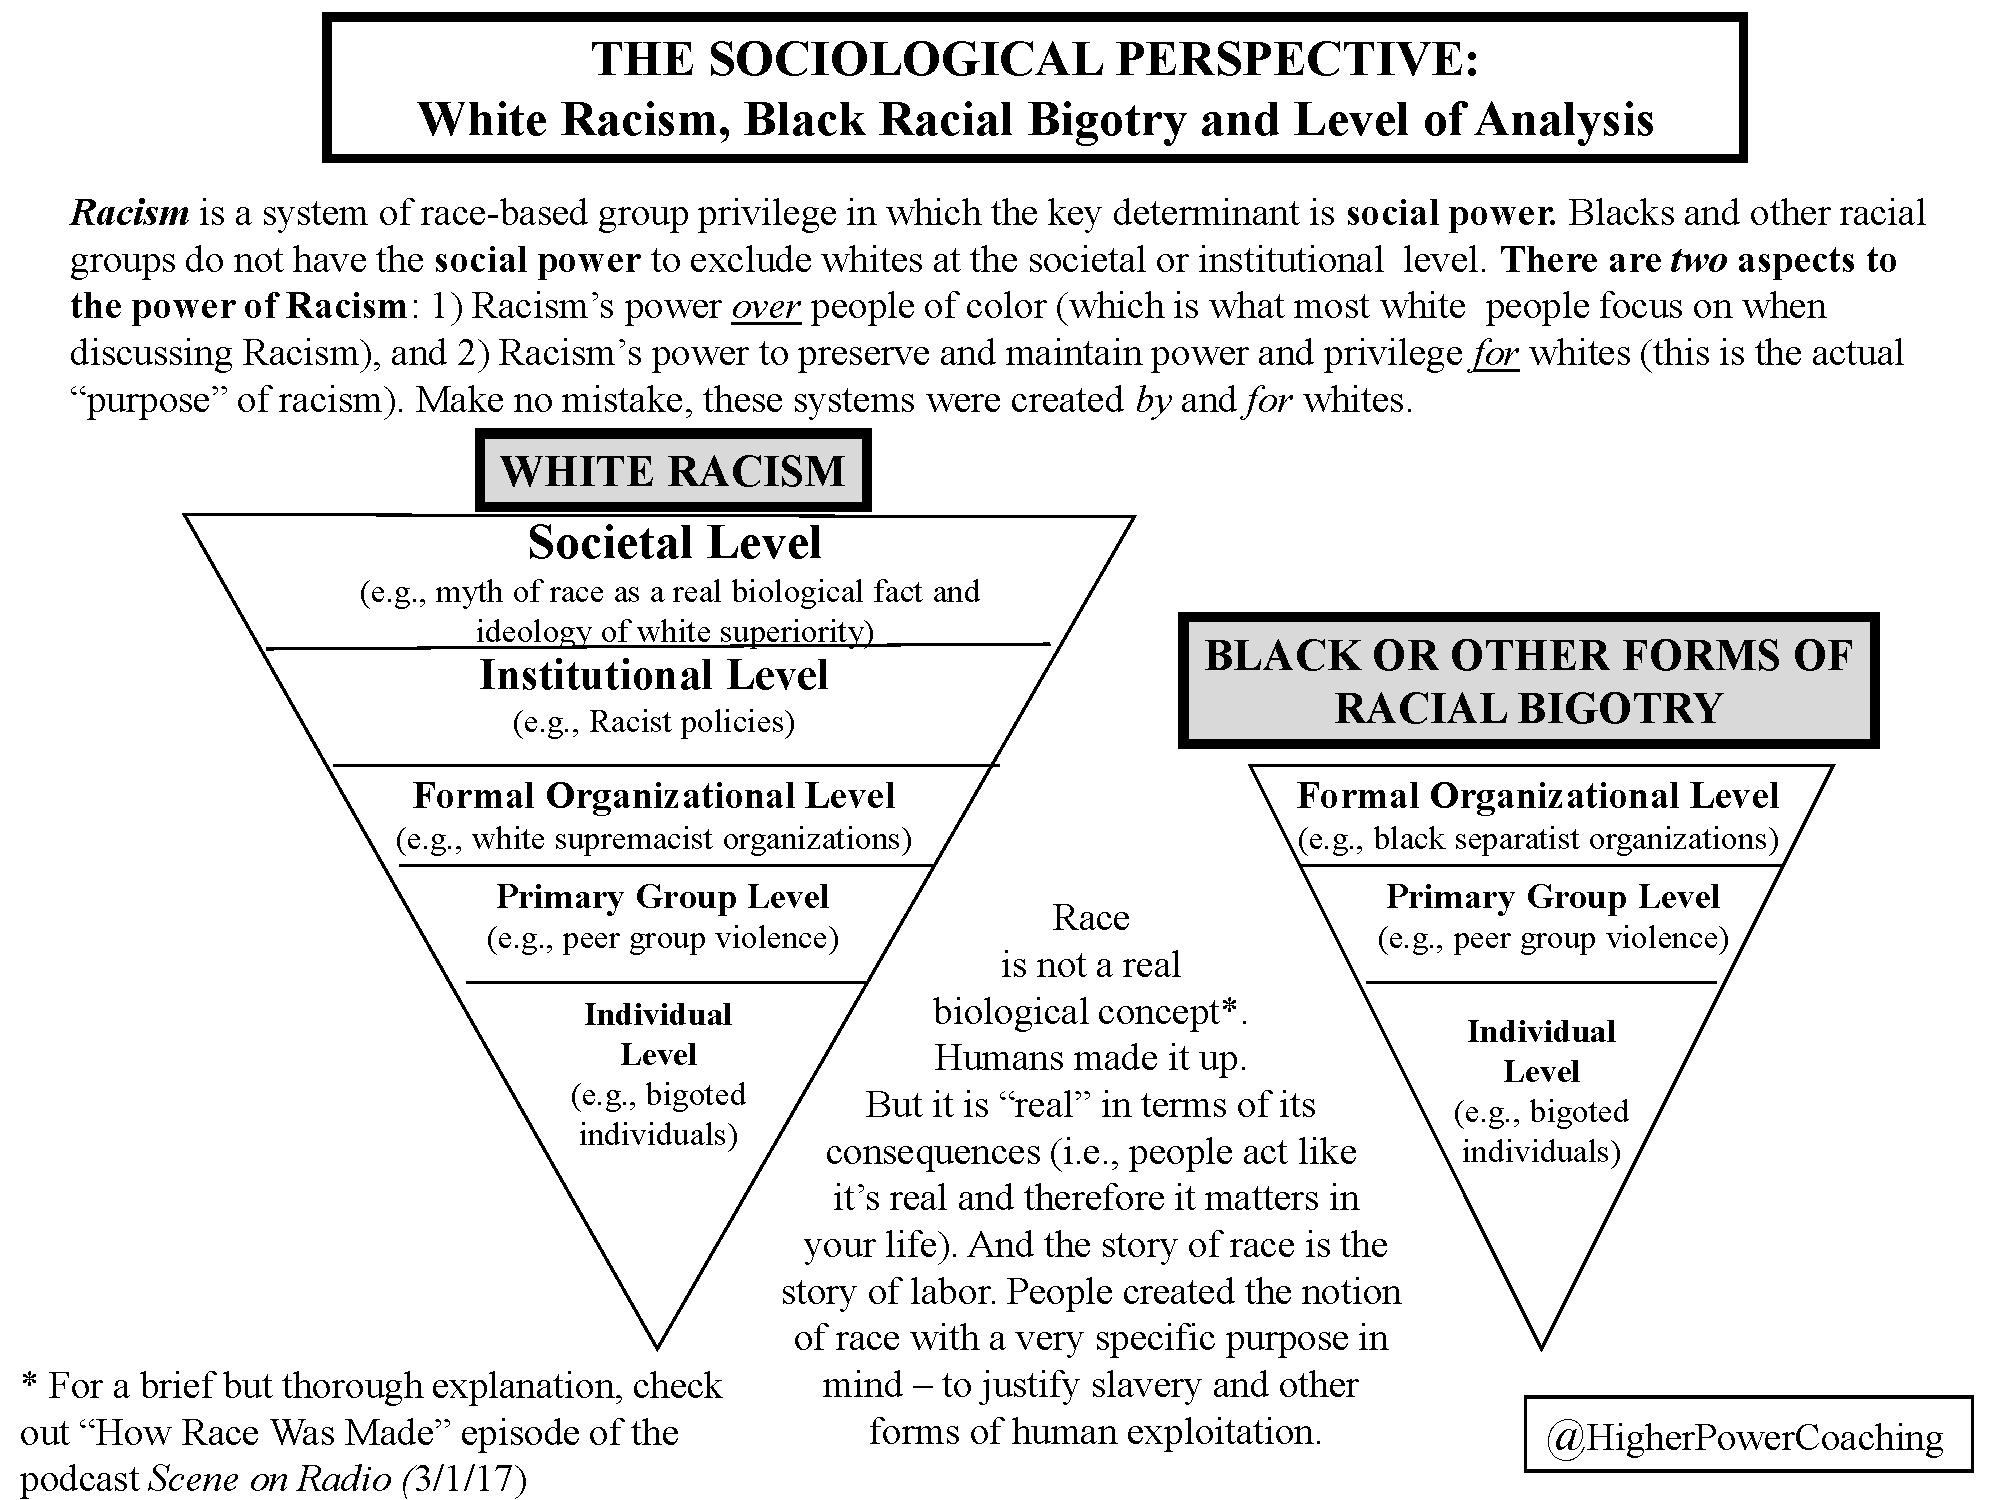 A sociological perspective of white racism, black racial bigotry and level of analysis